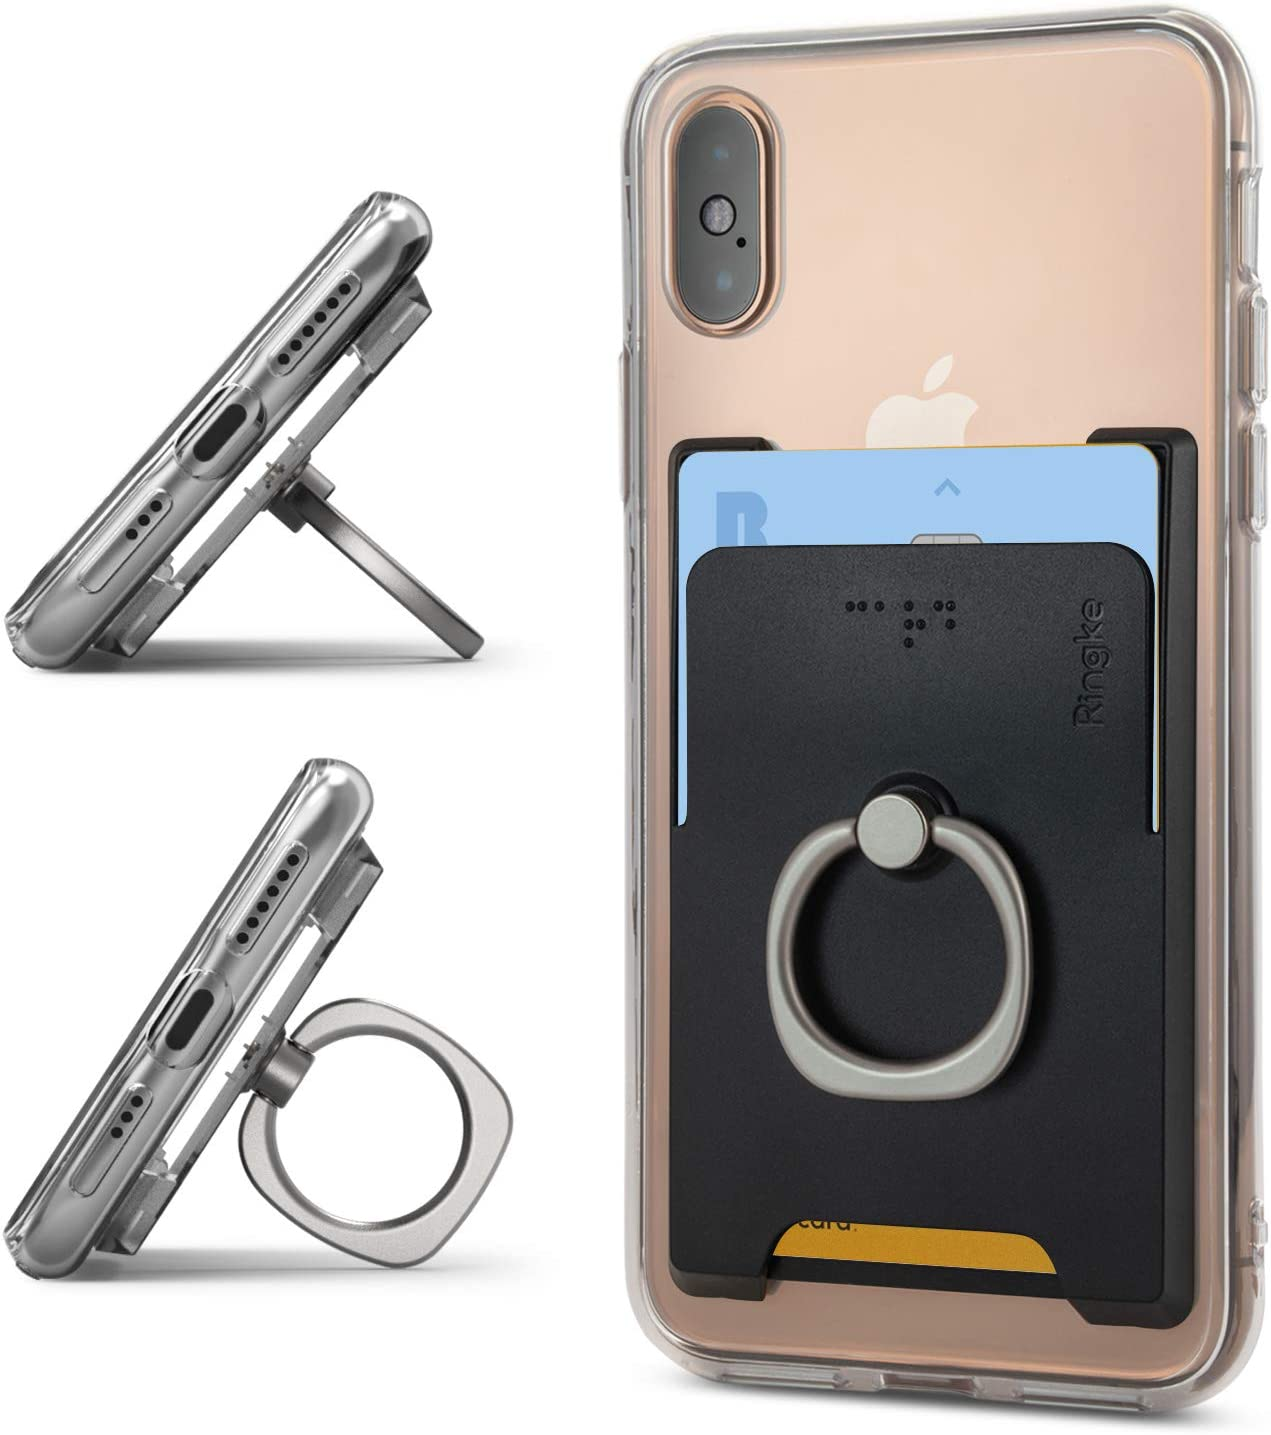 Peach Pink Ringke Ring Slot Card Holder Slim Adhesive Attachment with Finger Ring Compatible for Galaxy S20 Series iPhone 11 Series Pixel 4 Series and More